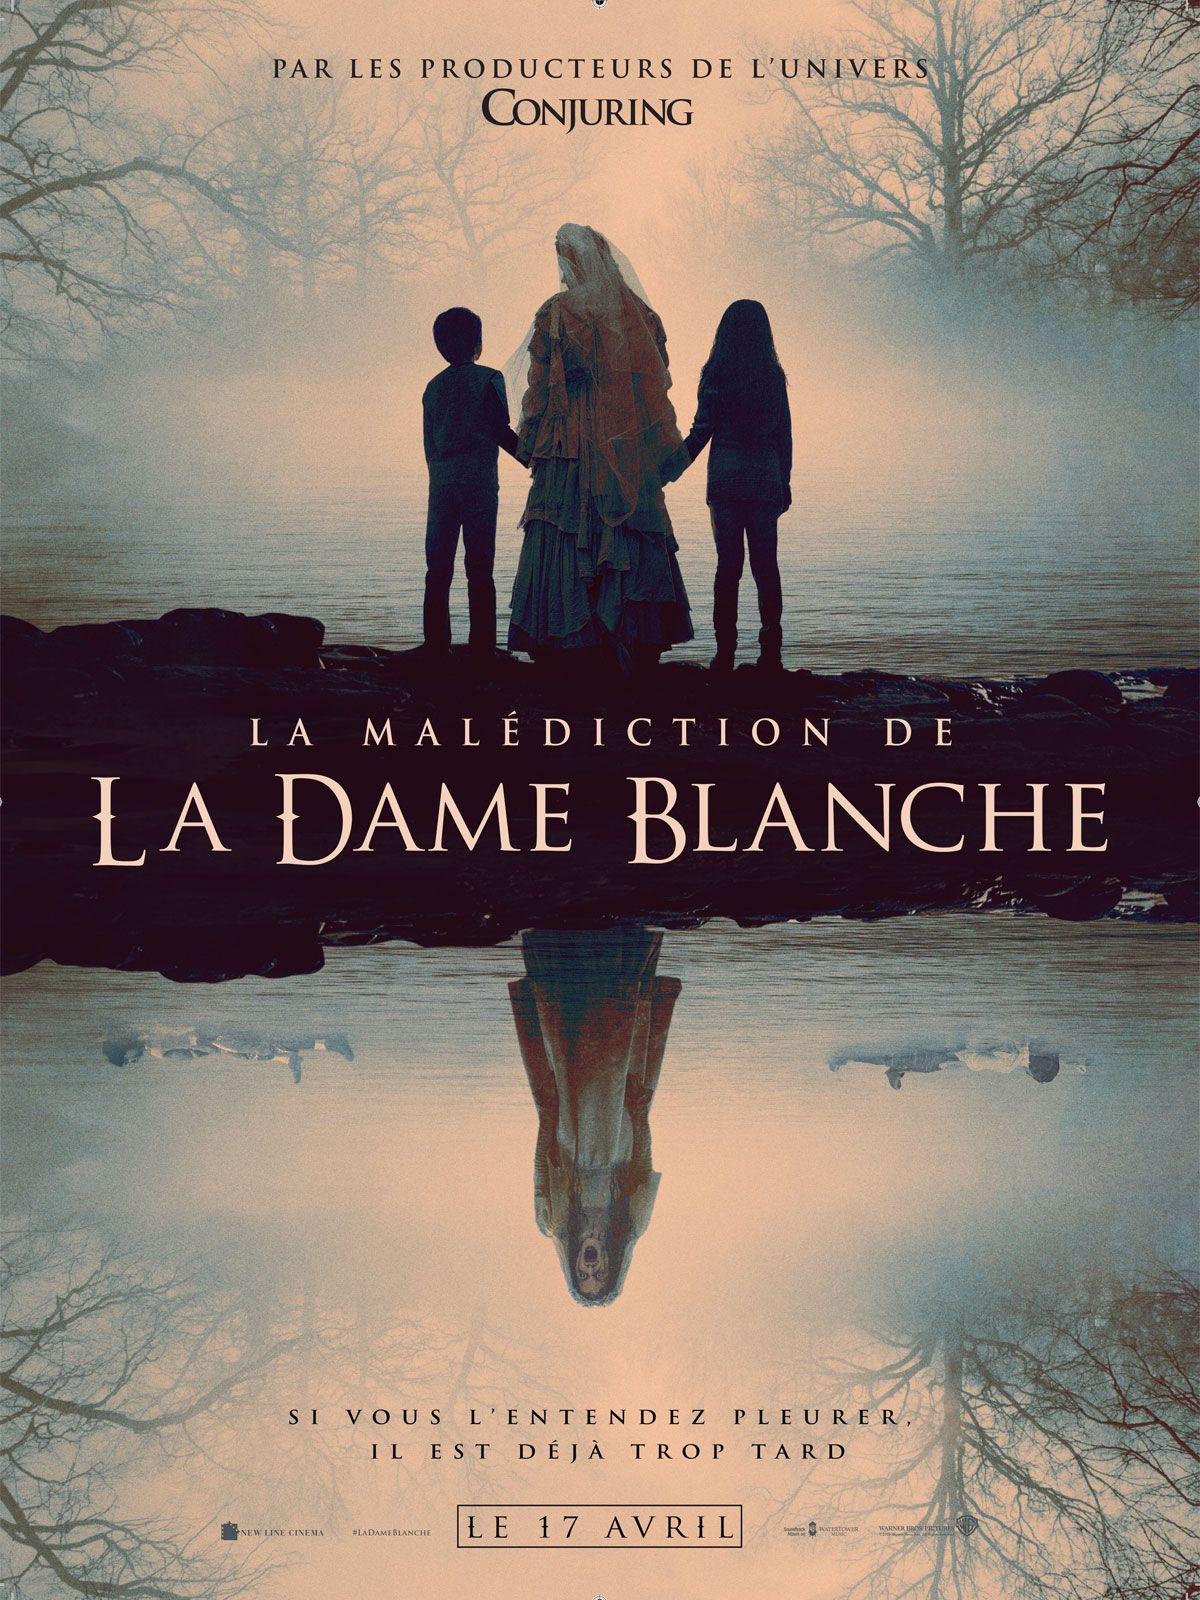 La Malédiction de la Dame blanche - Film (2019) streaming VF gratuit complet